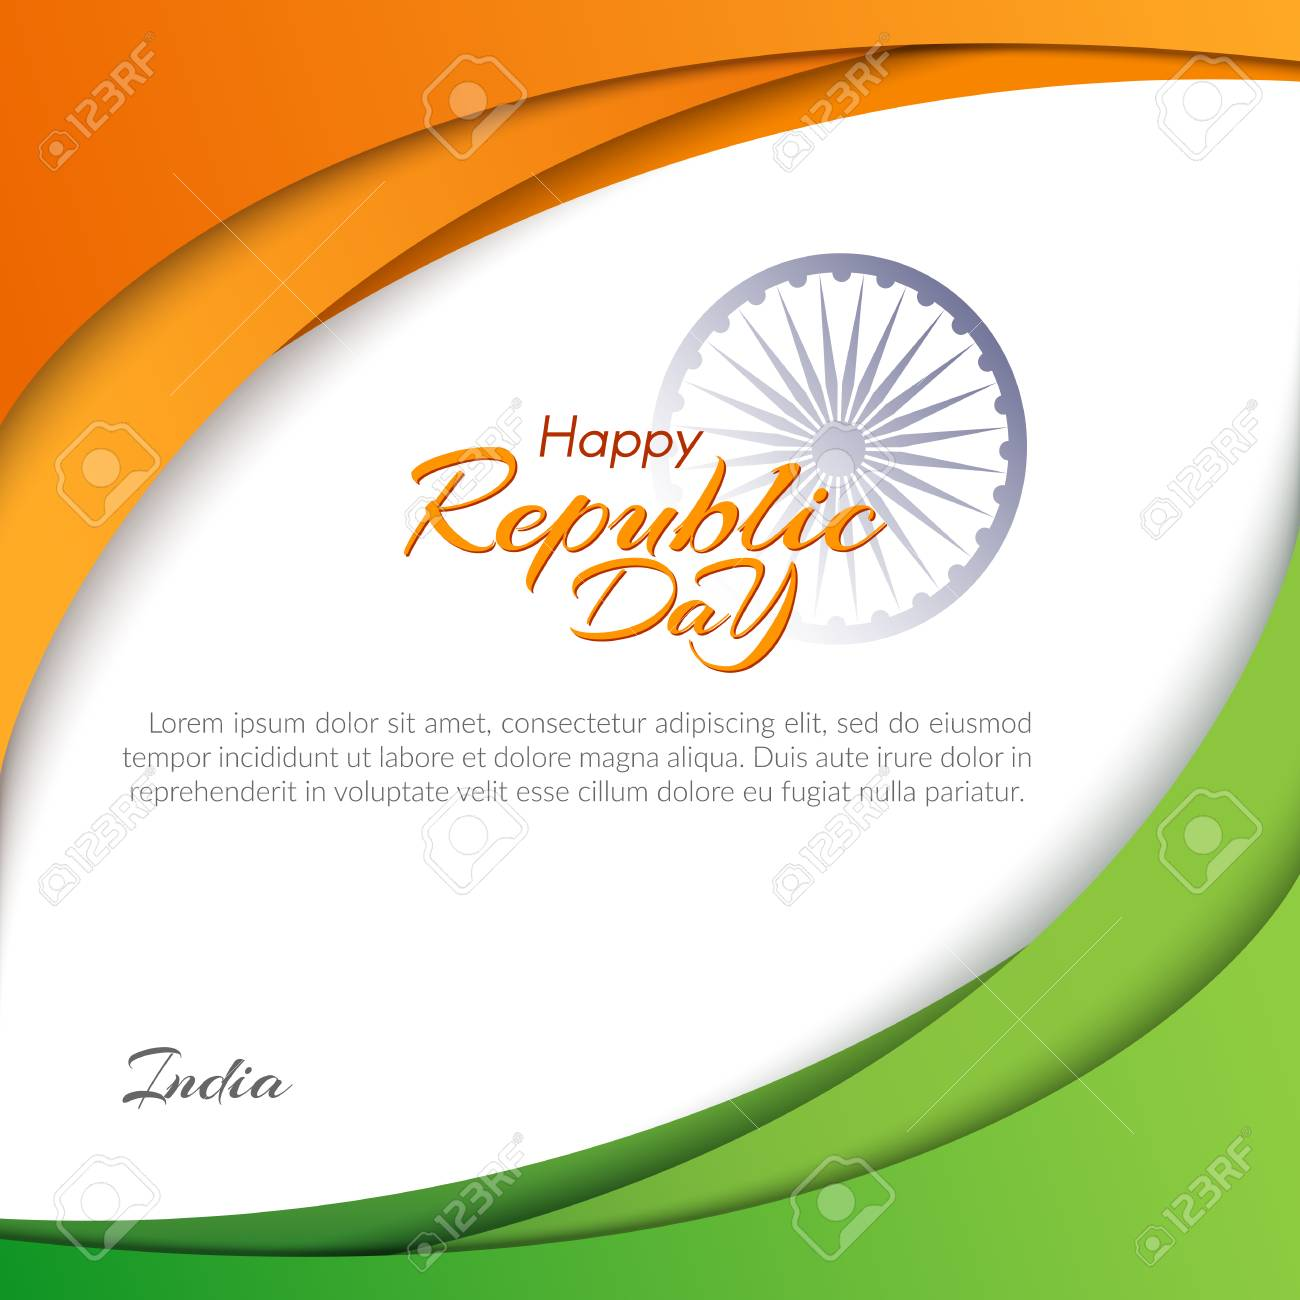 Template With The Text Of The Republic Day In India On January